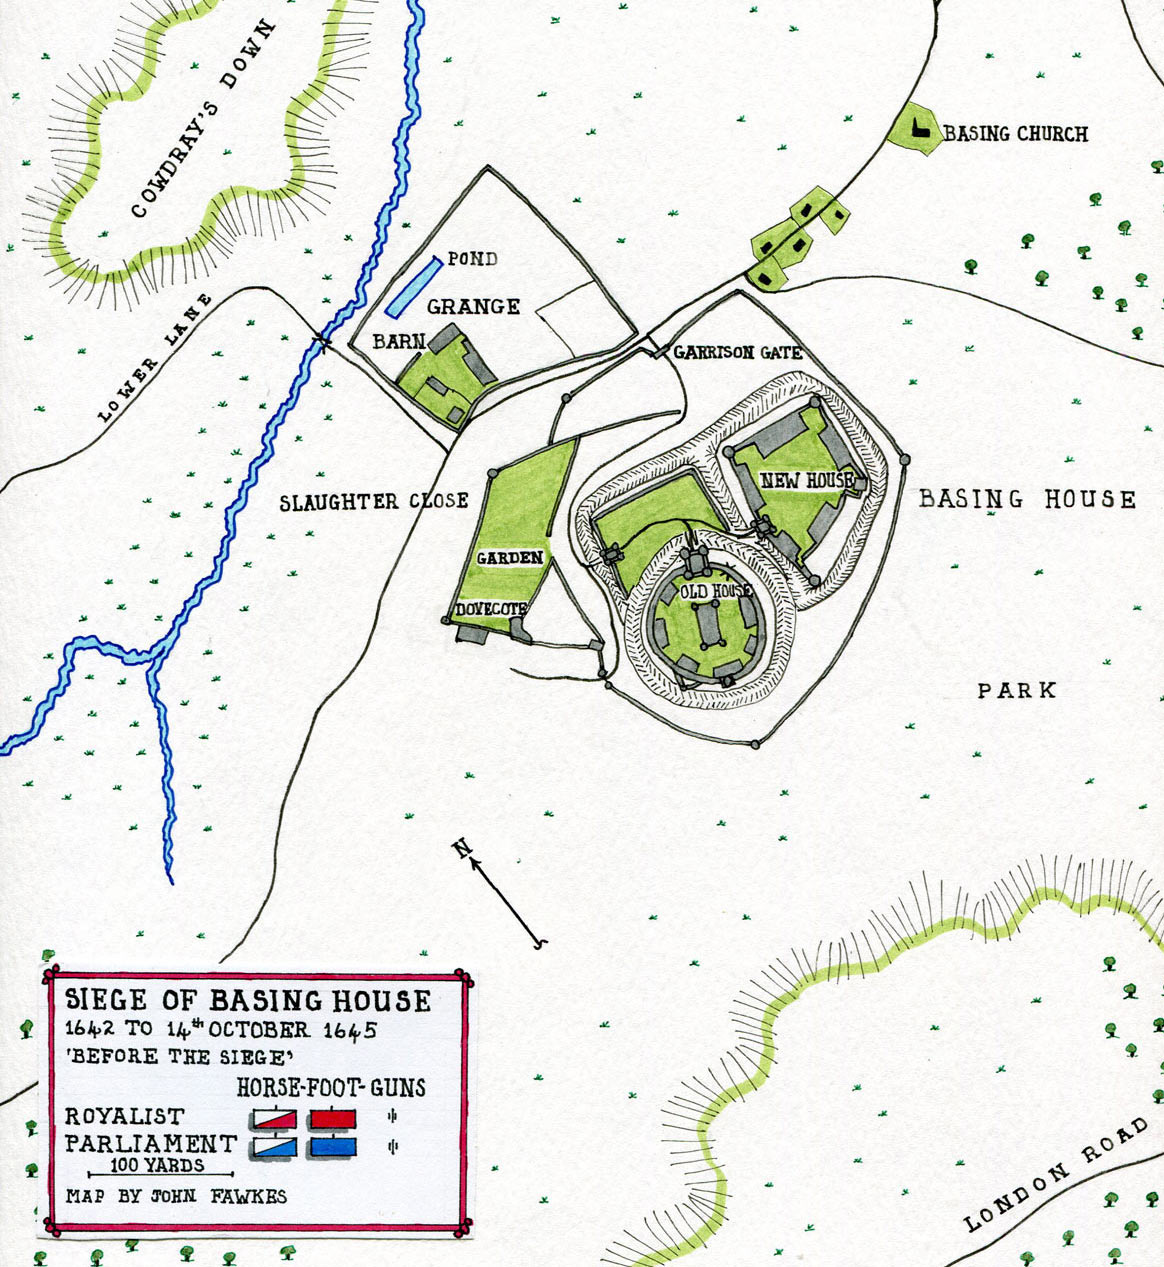 Map of Basing House: Siege of Basing House 1642 to 1645 during the English Civil War: map by John Fawkes